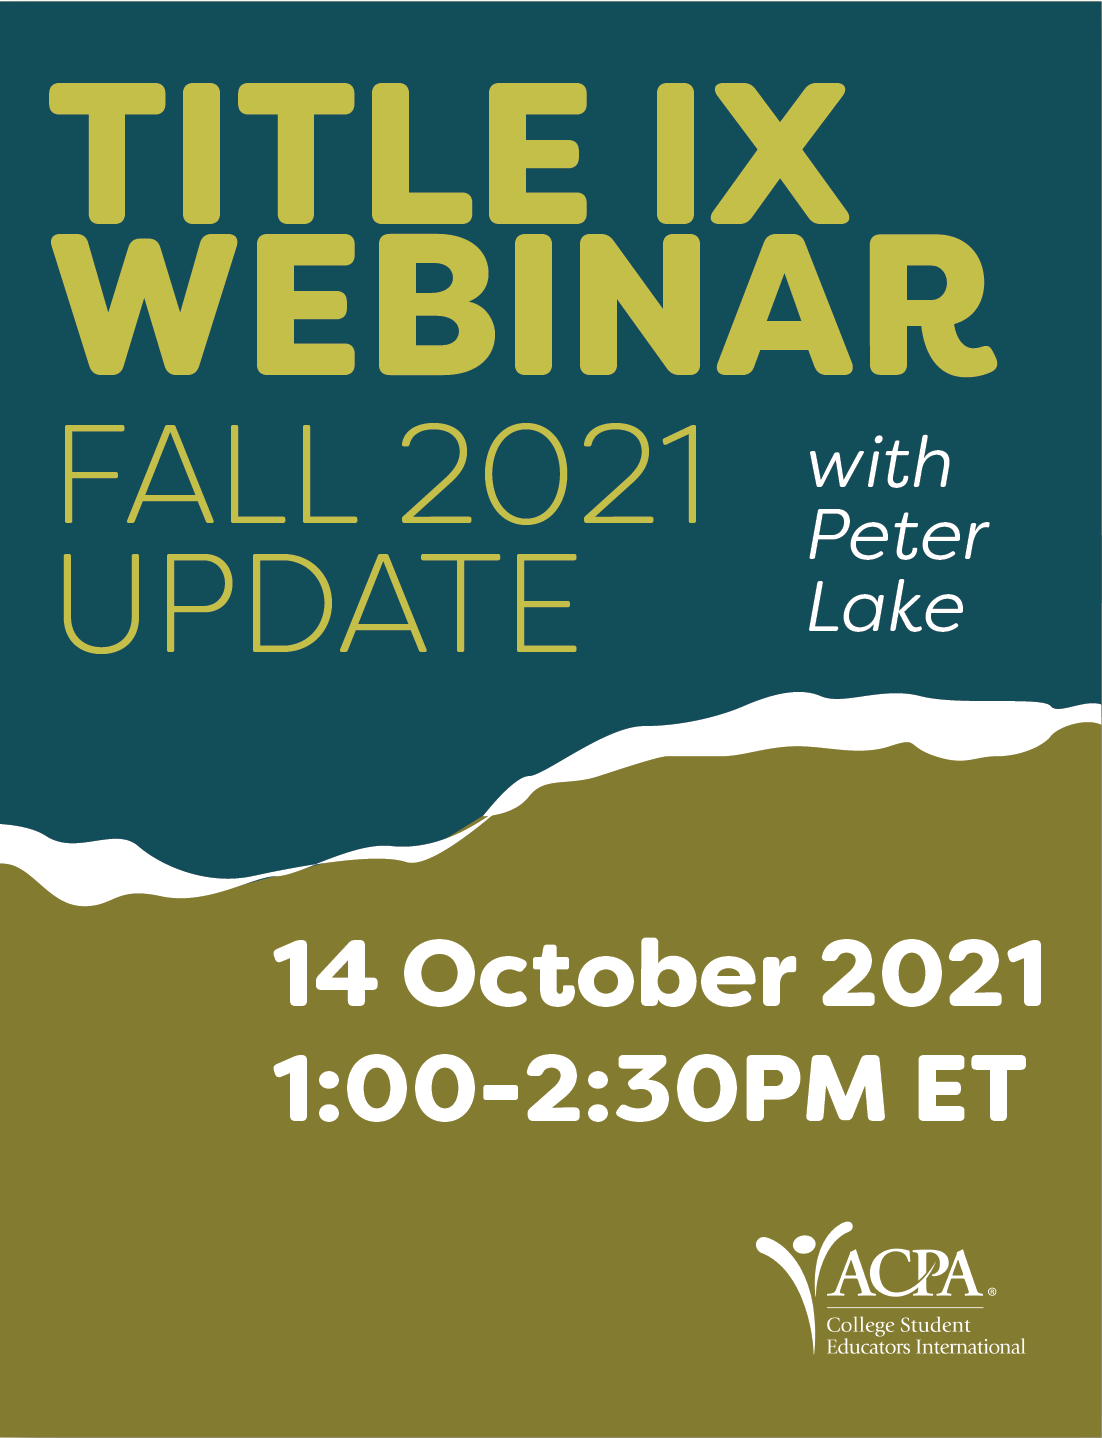 Title IX Webinar with Peter Lake. Fall 2021 Update. 14 October 2021 1:00-2:30pm ET